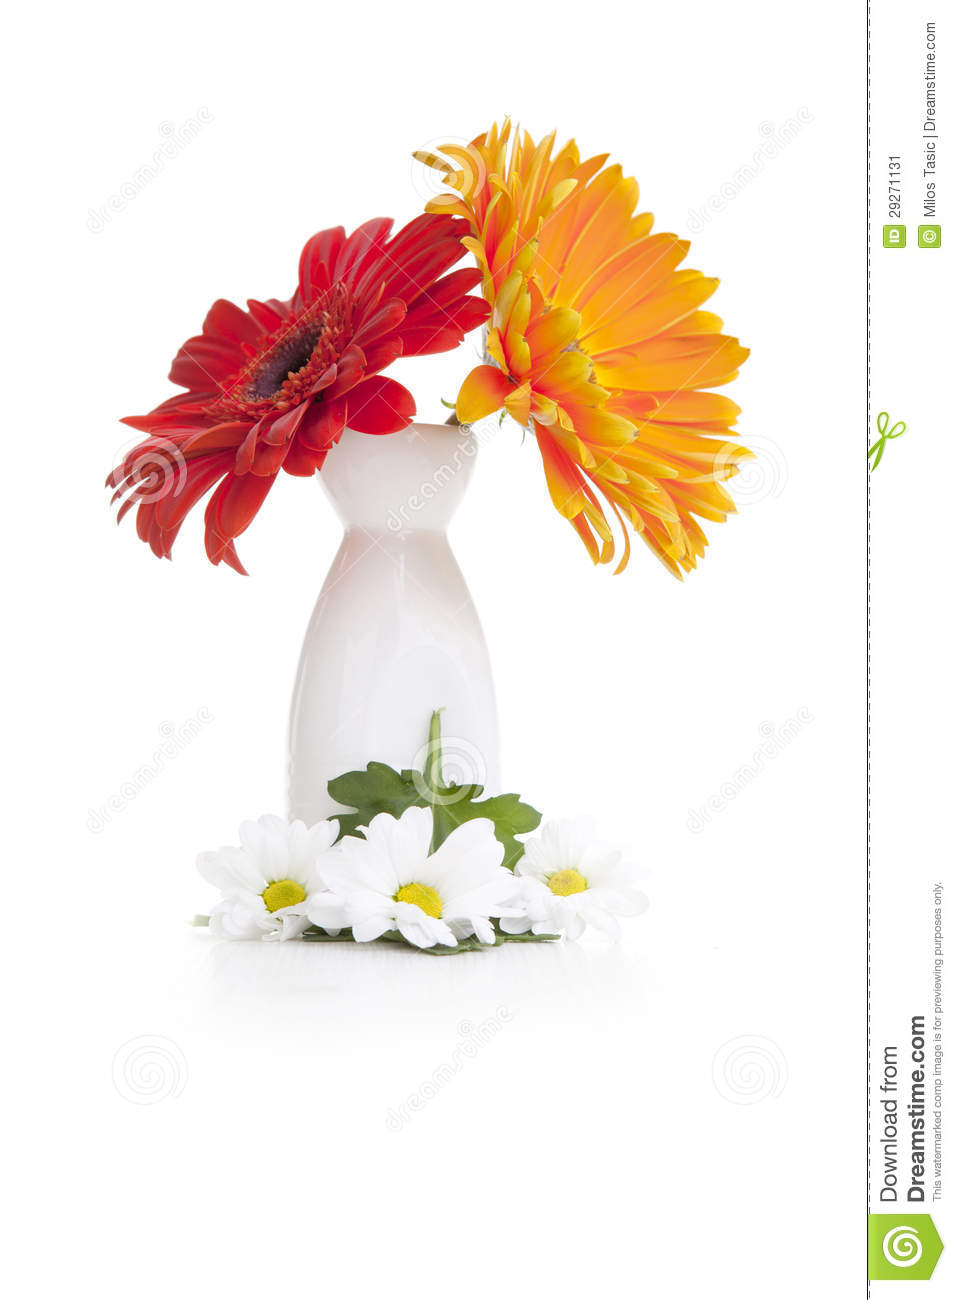 Red And Orange Daisy Flowers In White Vase Stock Image ...